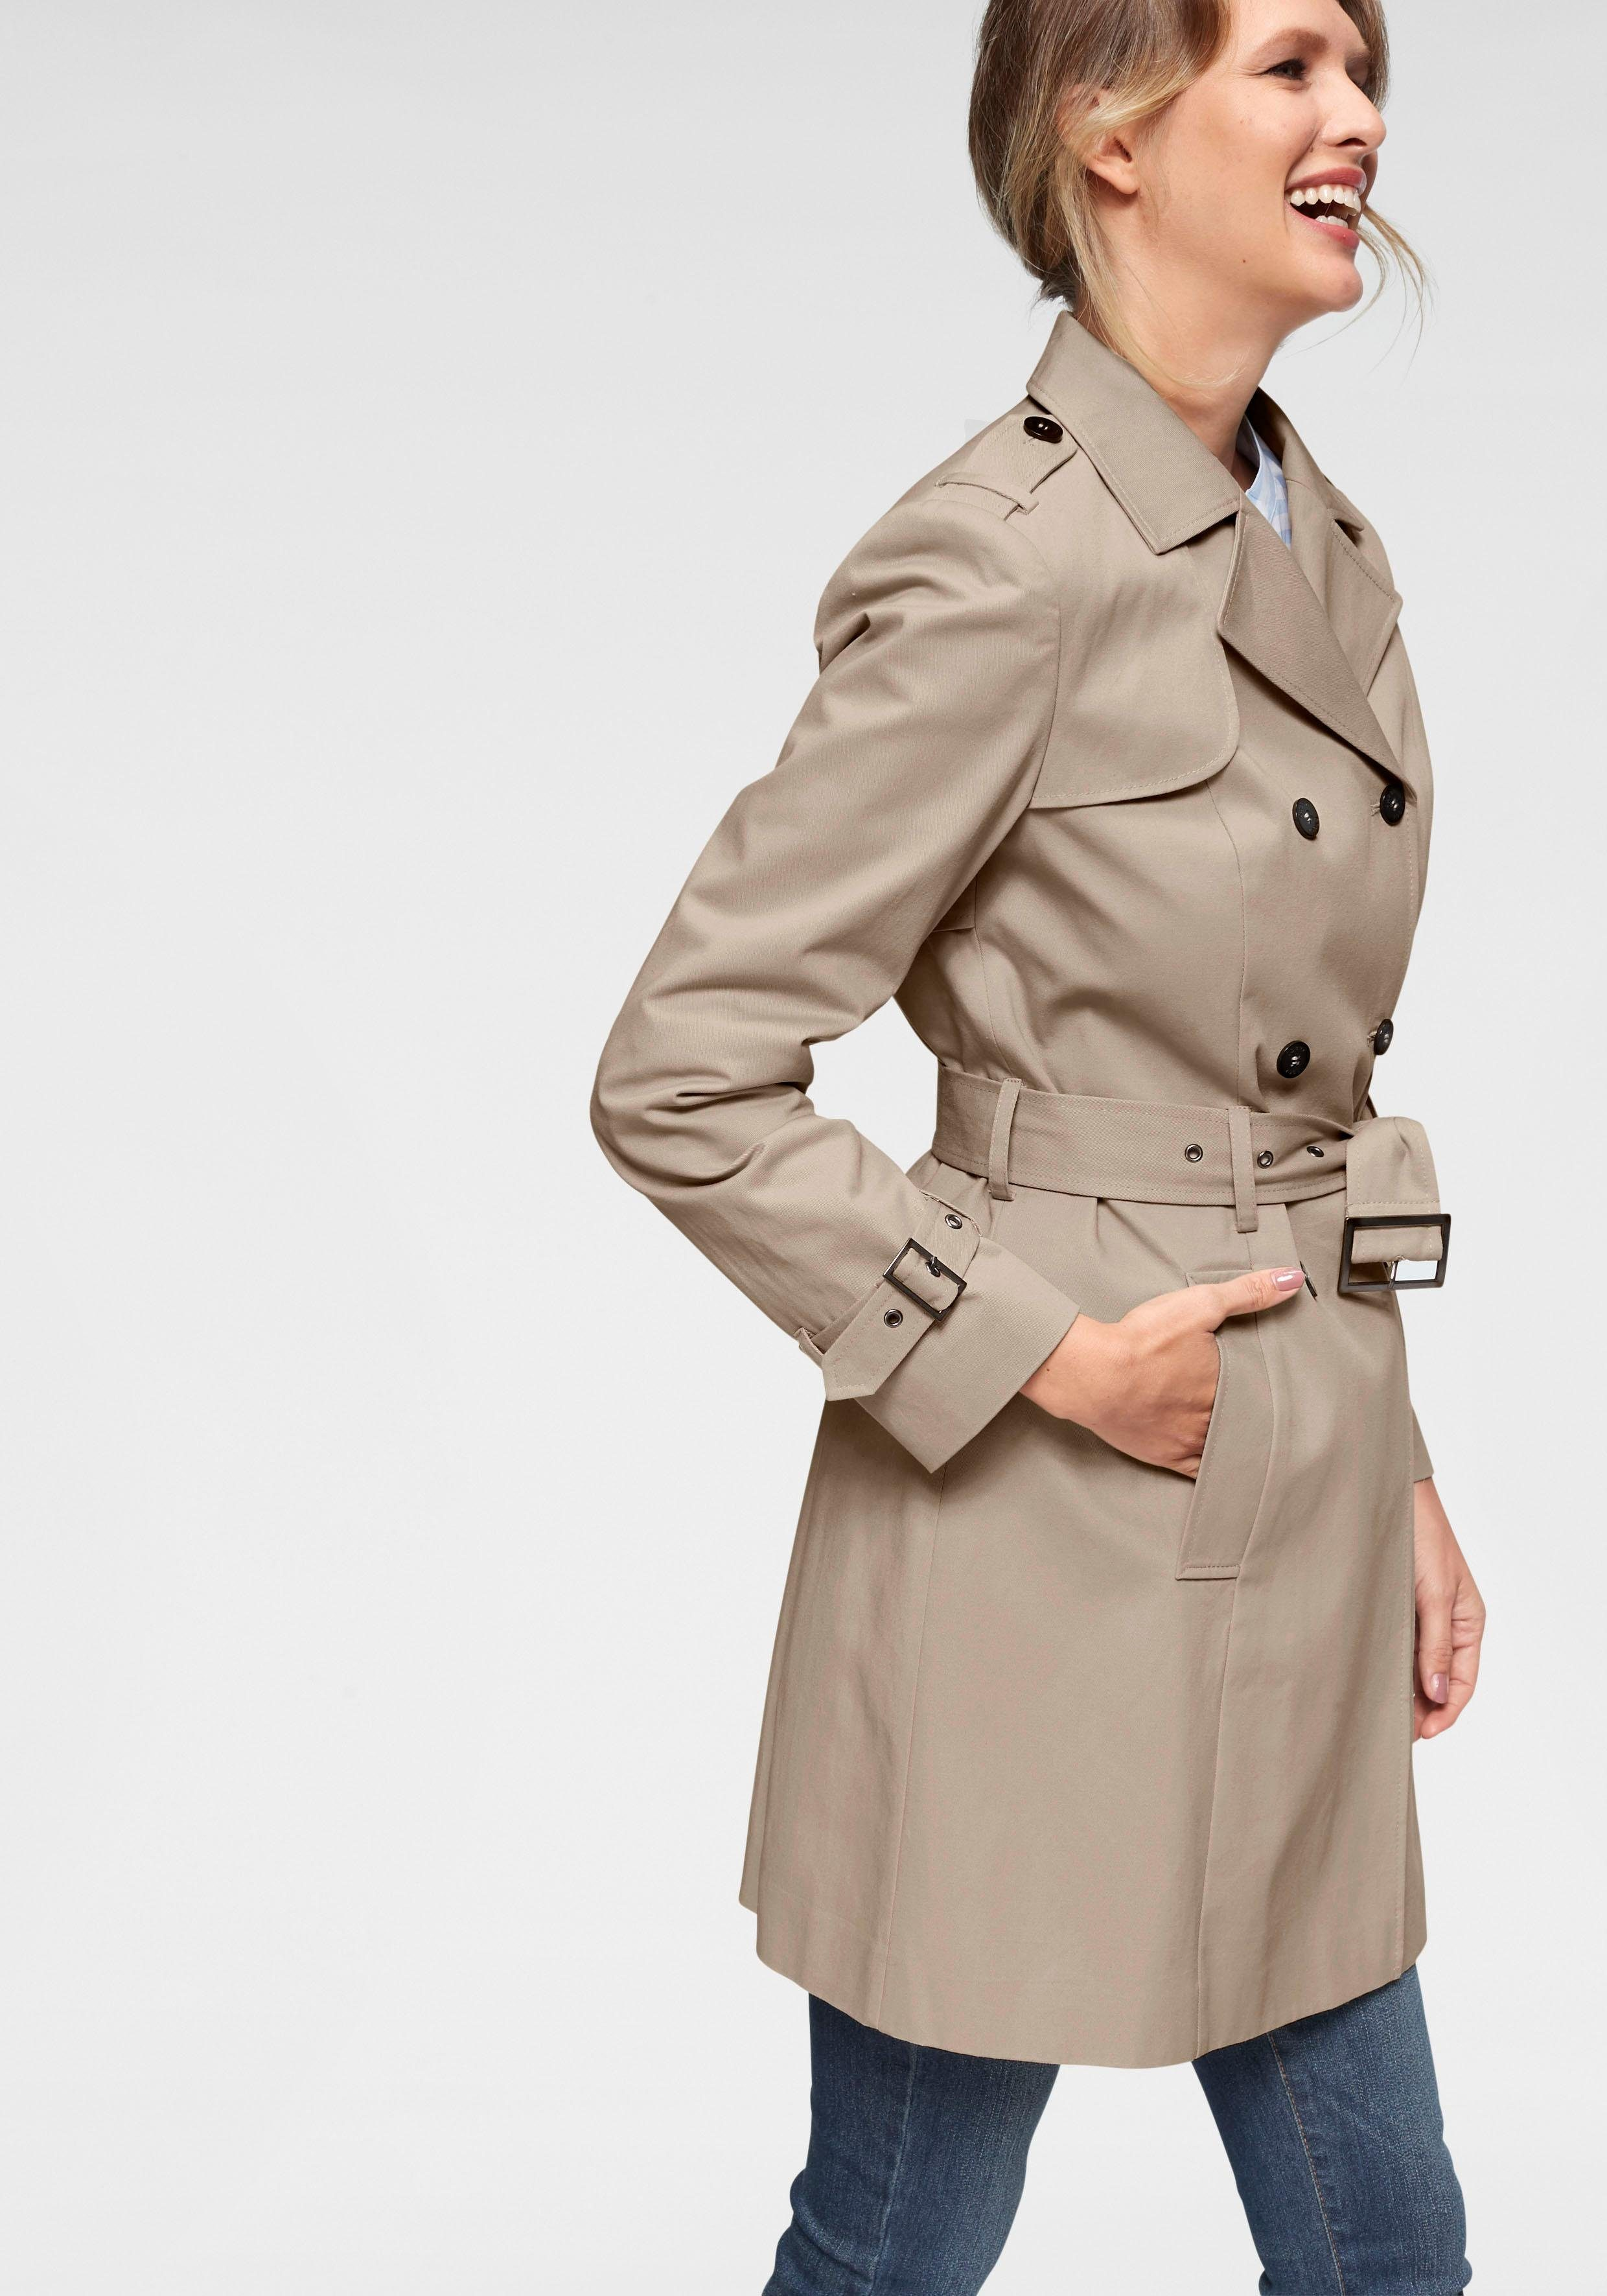 Cheer Casual Aniston Casual Casual Cheer Trenchcoat Trenchcoat Aniston Aniston Cheer sBQrdCothx